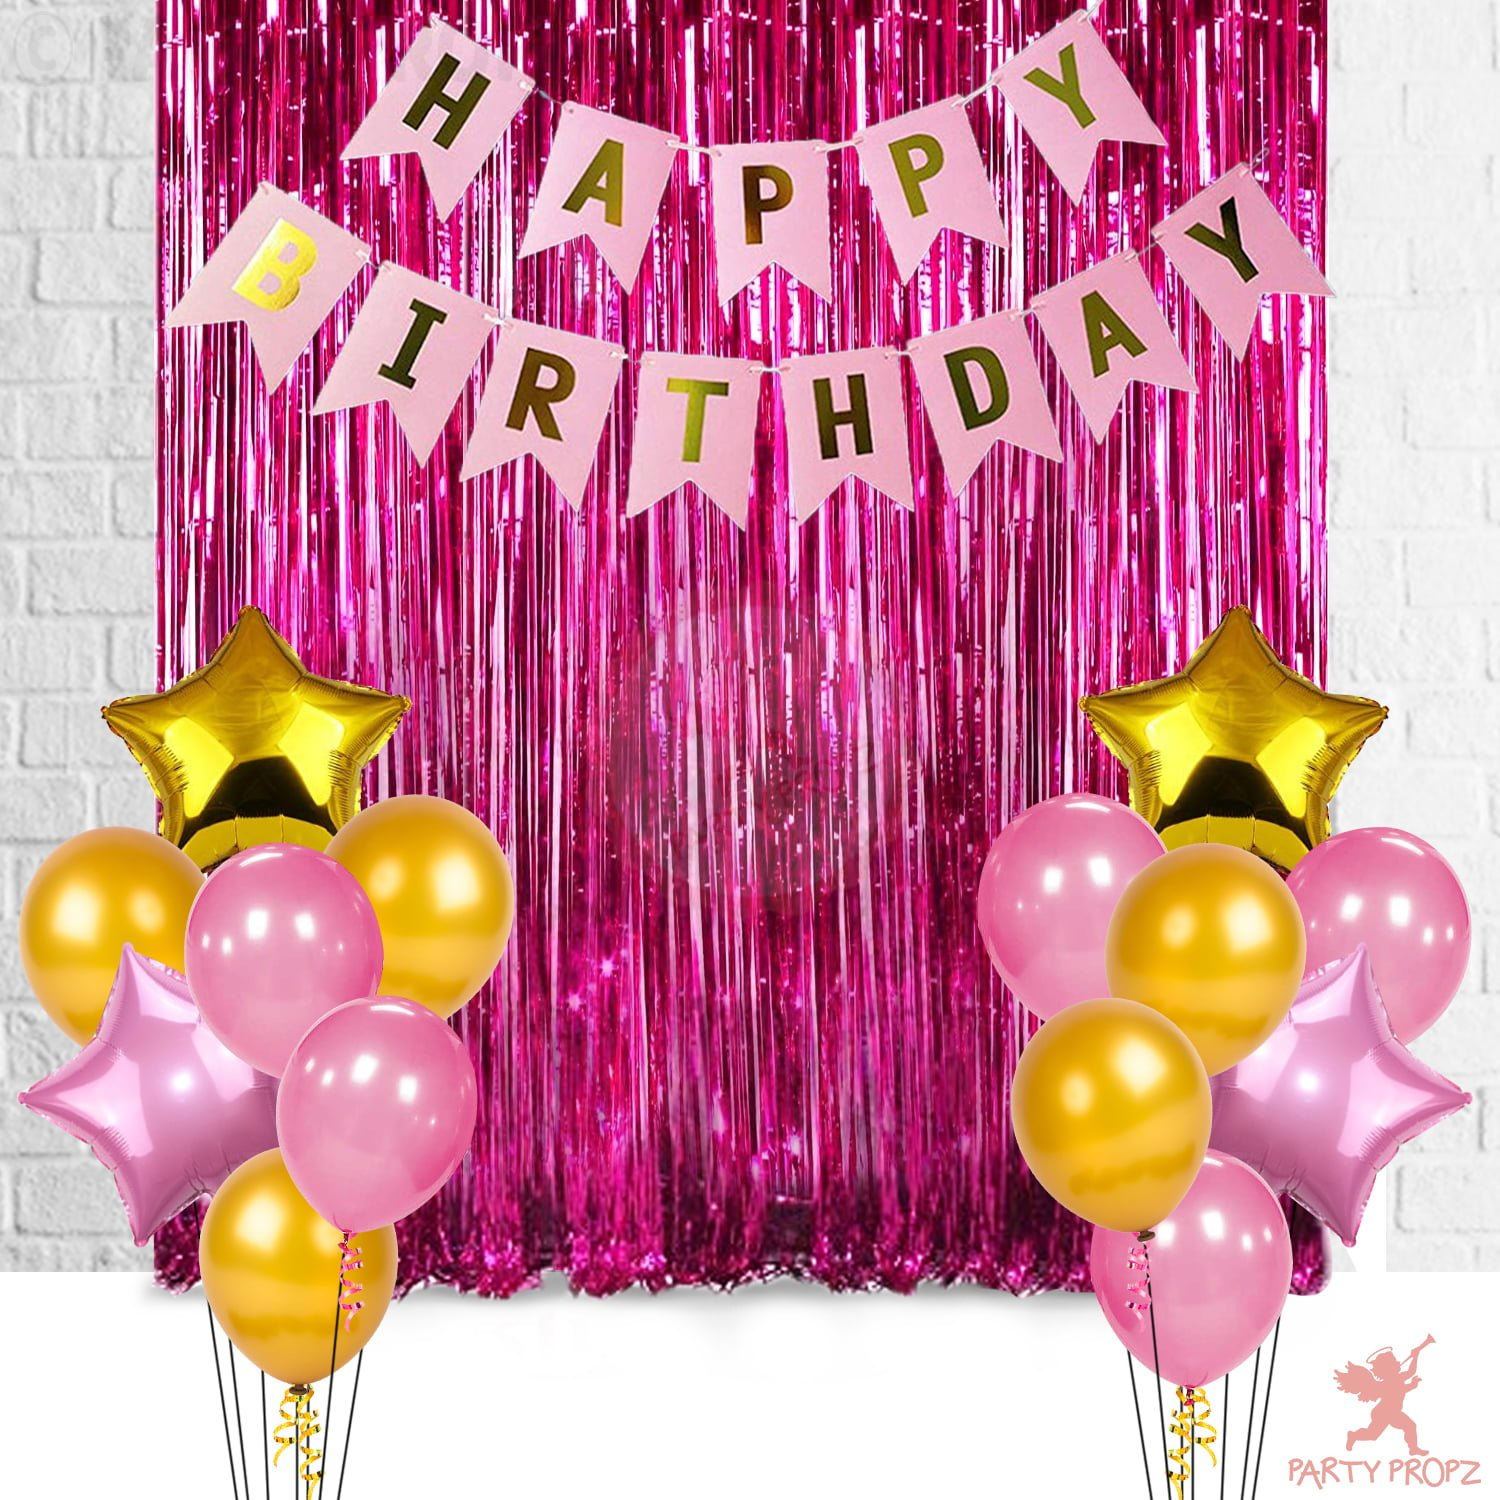 12Pcs Happy Birthday Foil Curtain, Banner And Balloons Decoration Items  Combo For Birthday Party Supplies For Girls, Wife